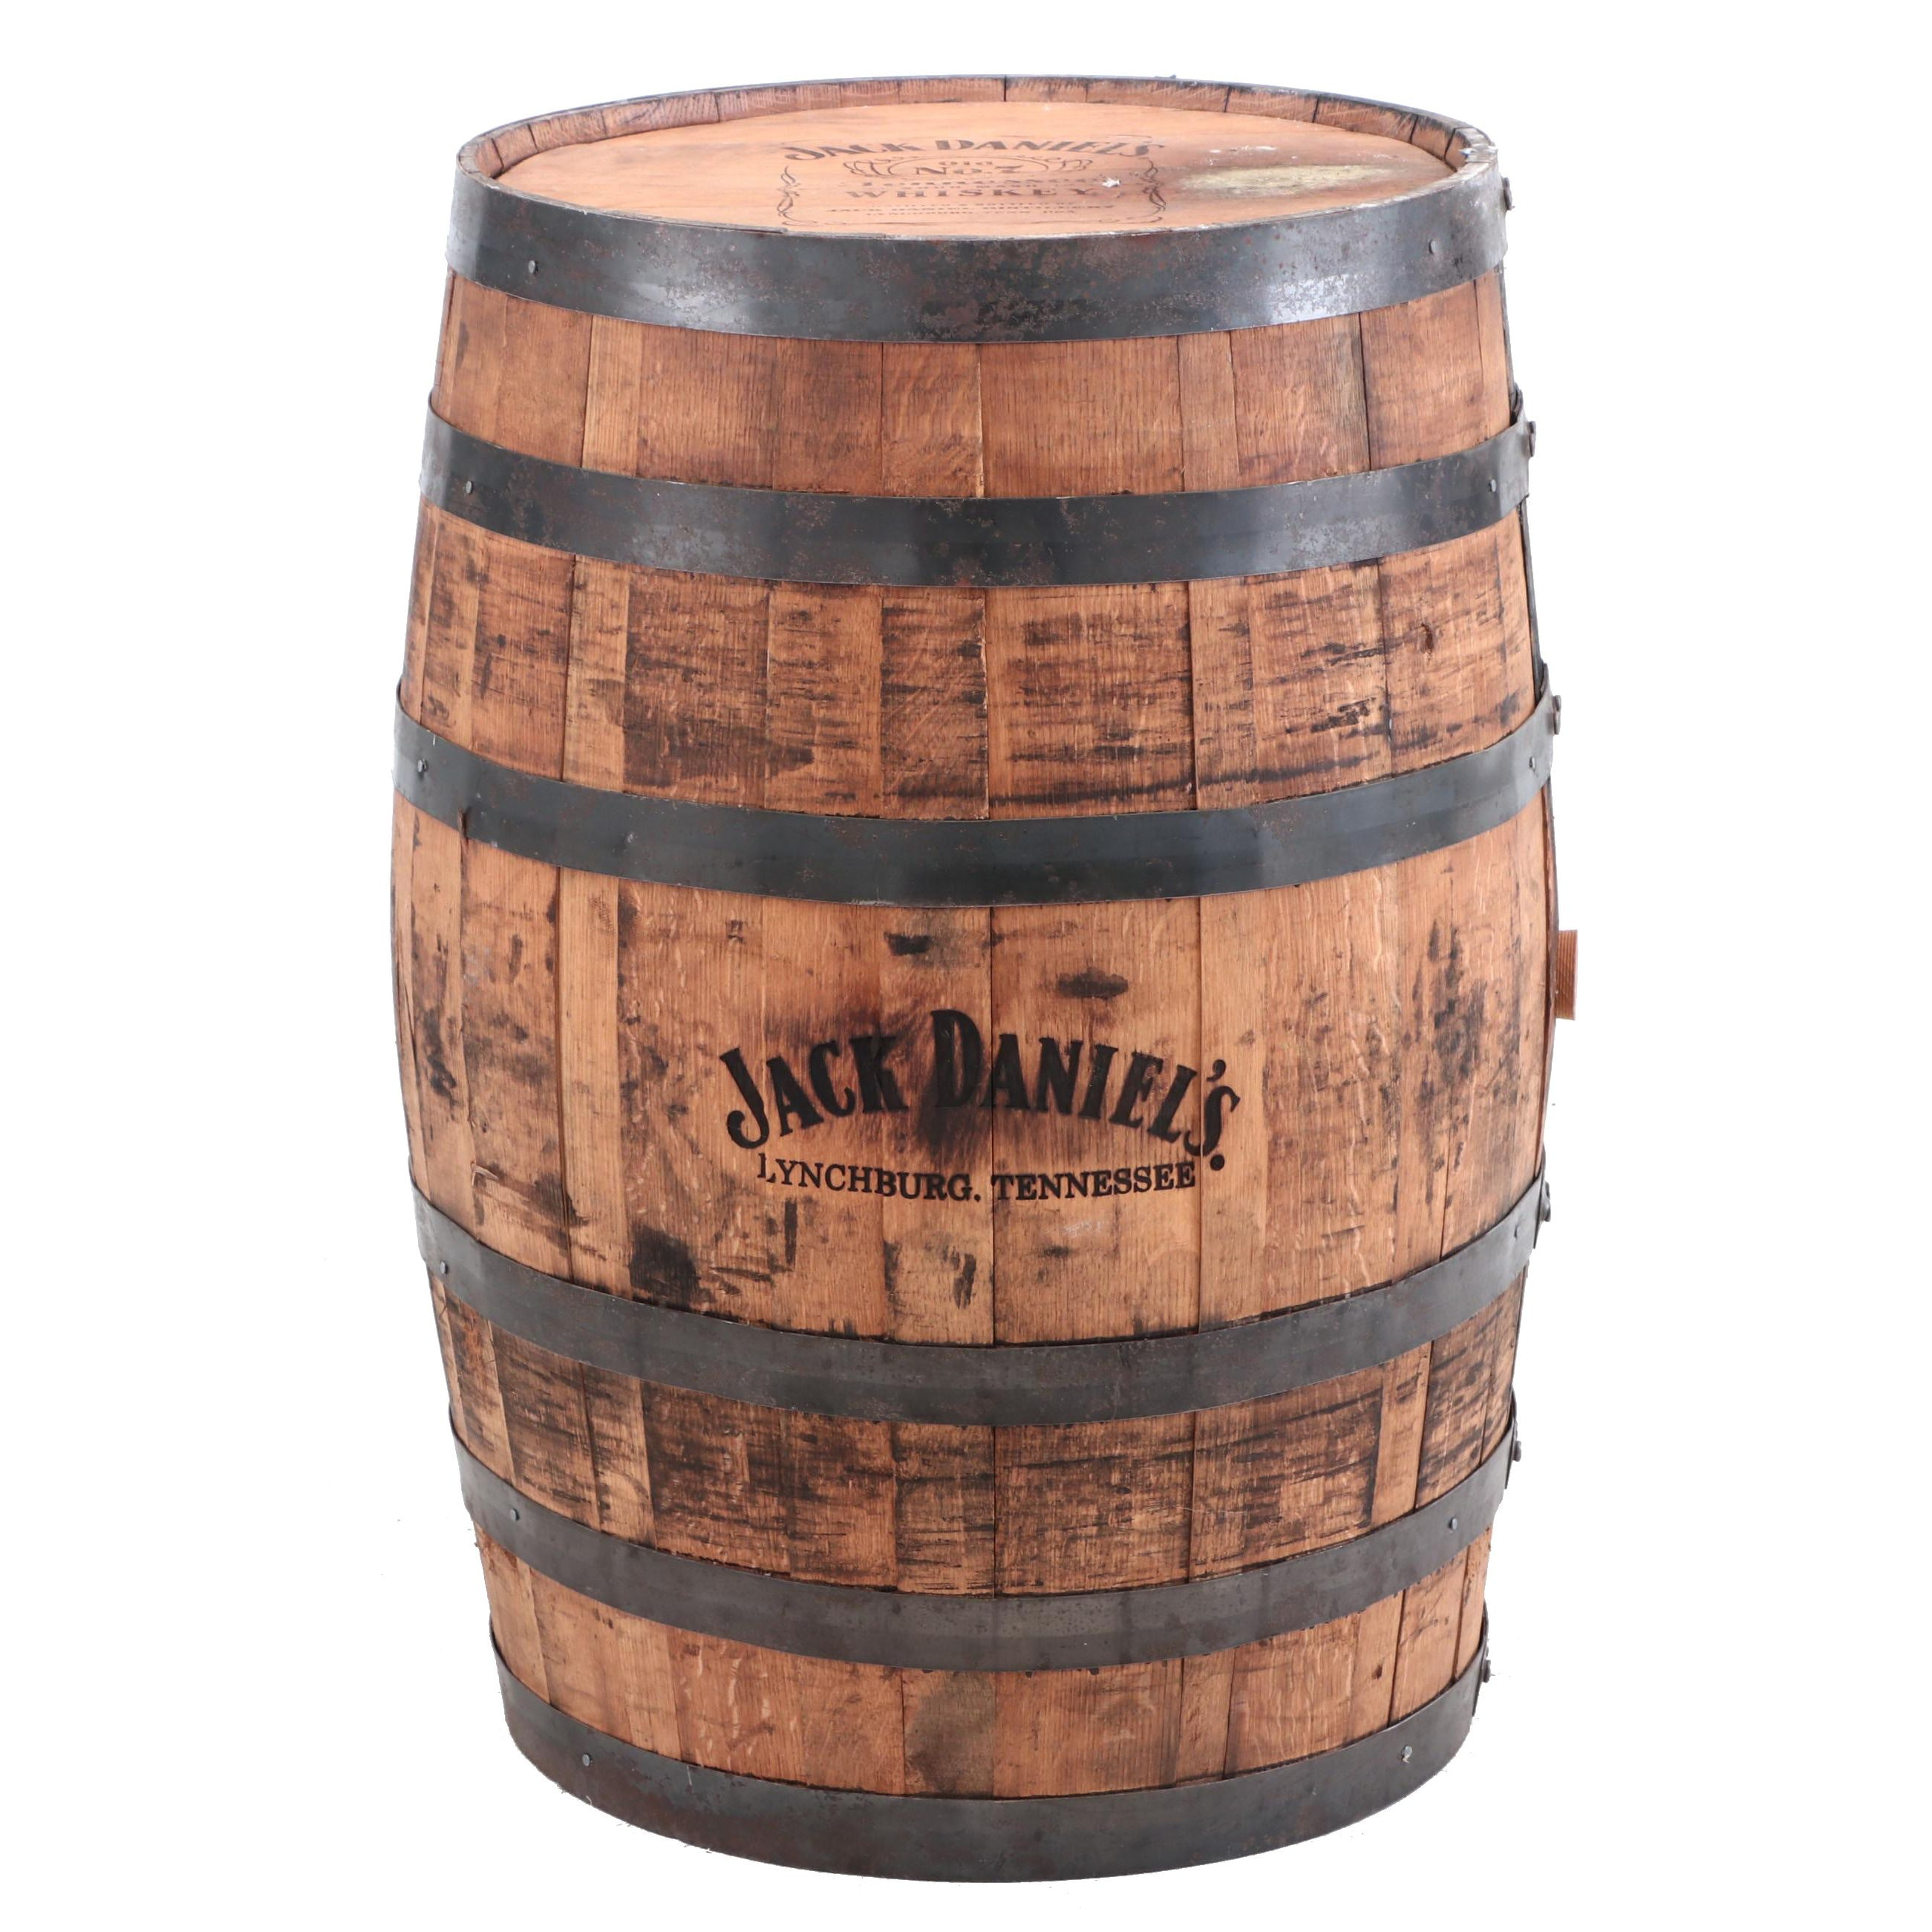 "Jack Daniels ""Old No. 7 Brand"" Tennessee Whiskey Oak Barrel"